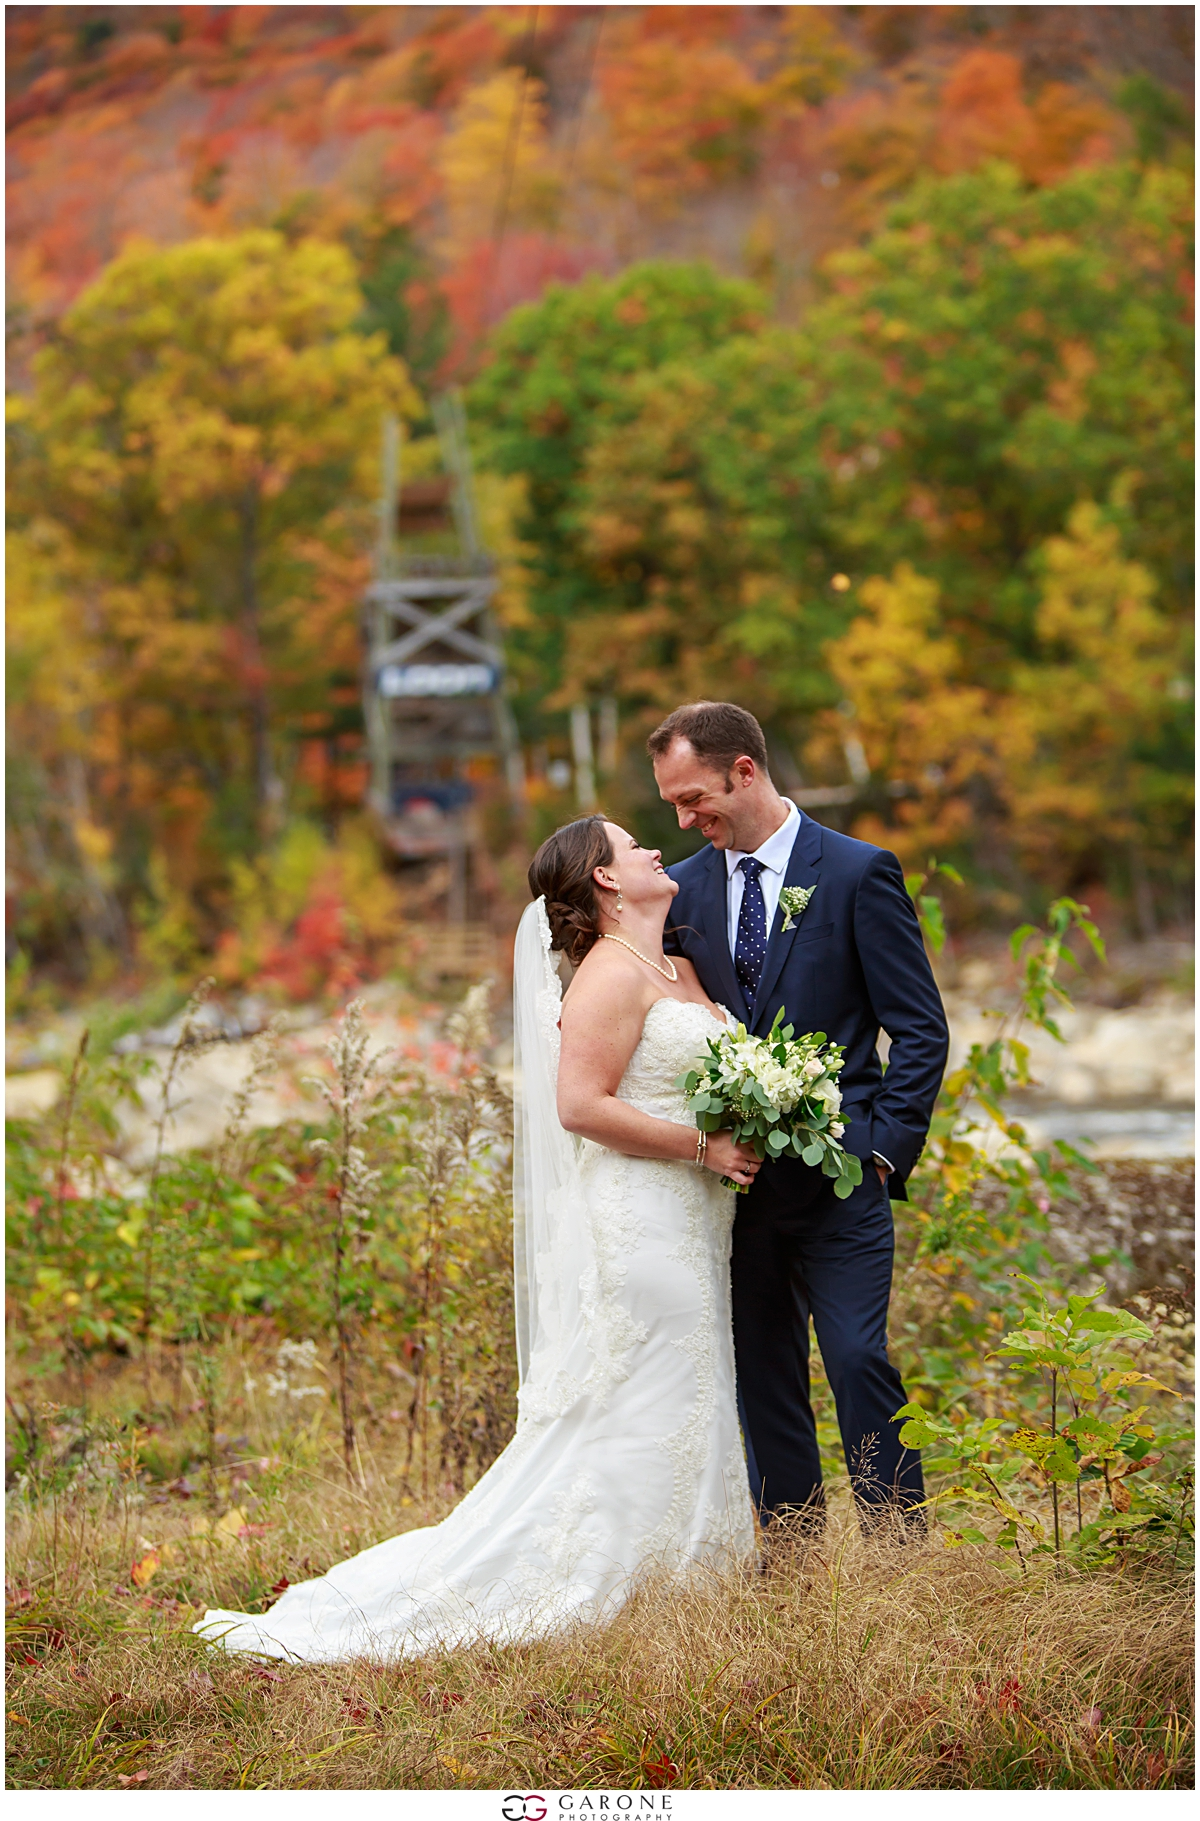 Garone_Photography_Loon_Mountain_Wedding_NH_White_Mountain_Wedding_Photography_0010.jpg